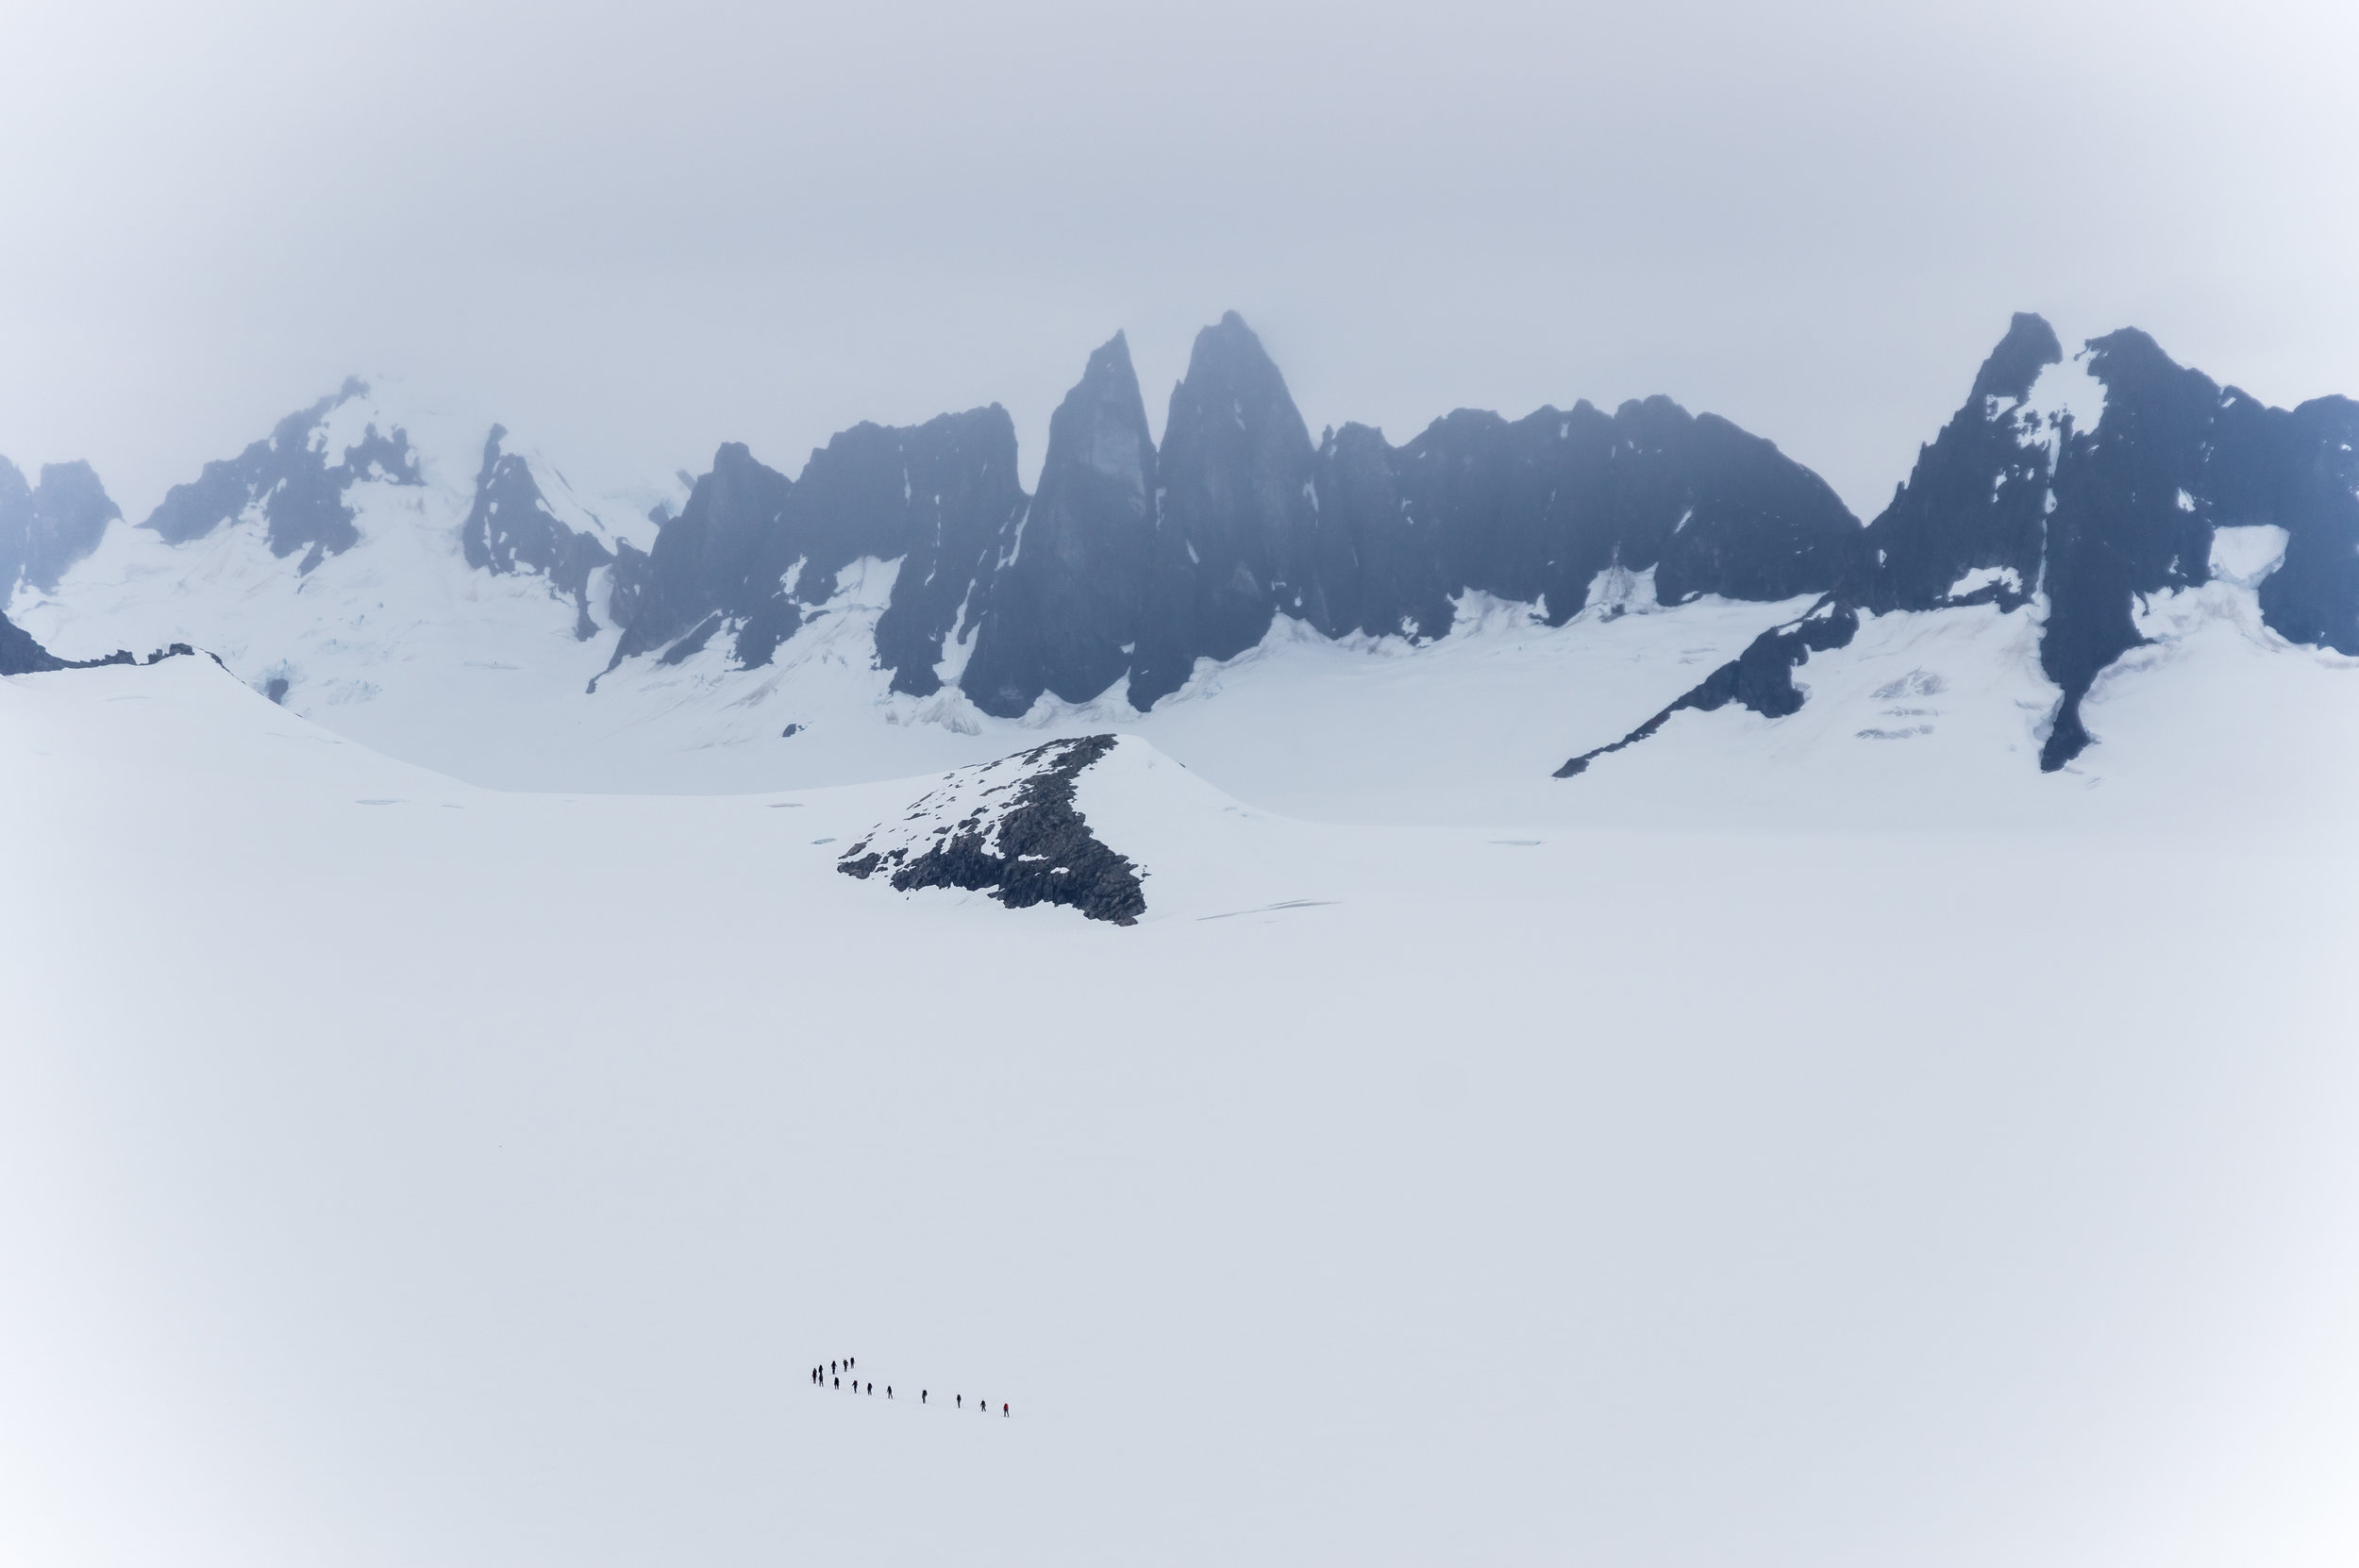 Two rope teams wind their way home between crevasses after a day of field work in the middle of Taku Glacier. Photo: Daniel Otto.